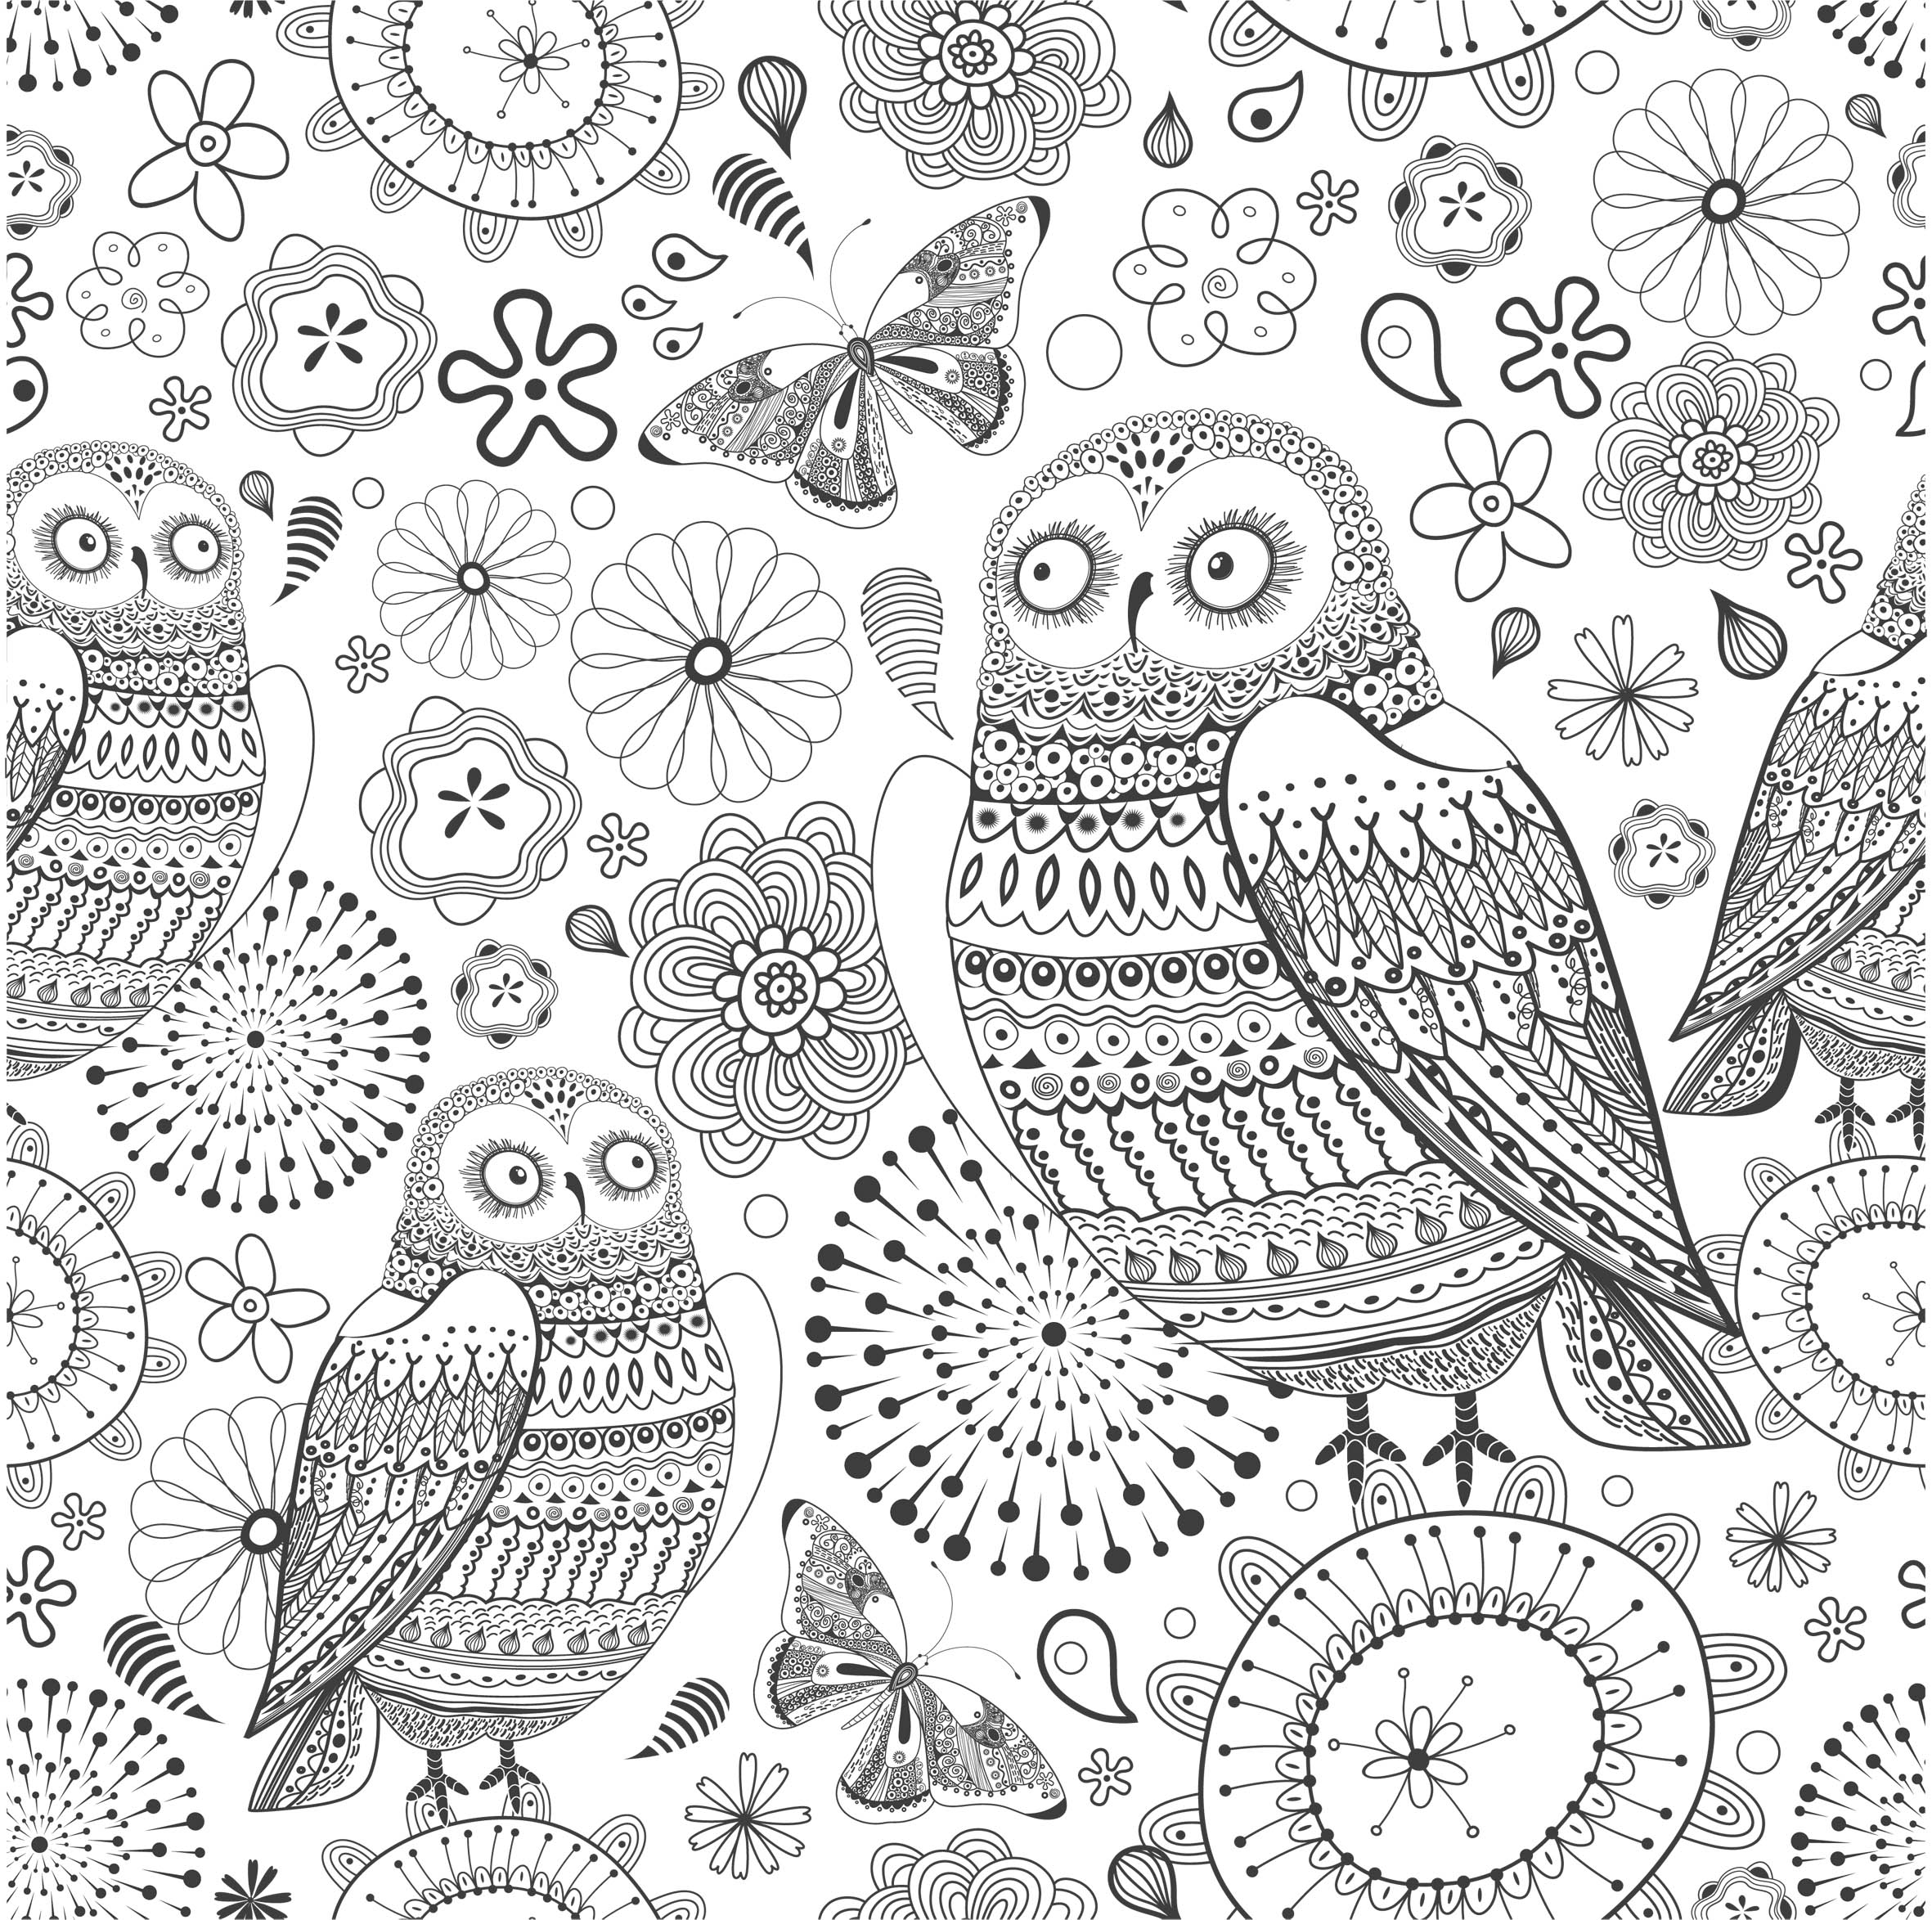 131 dessins de coloriage anti stress imprimer - Anti coloriage ...